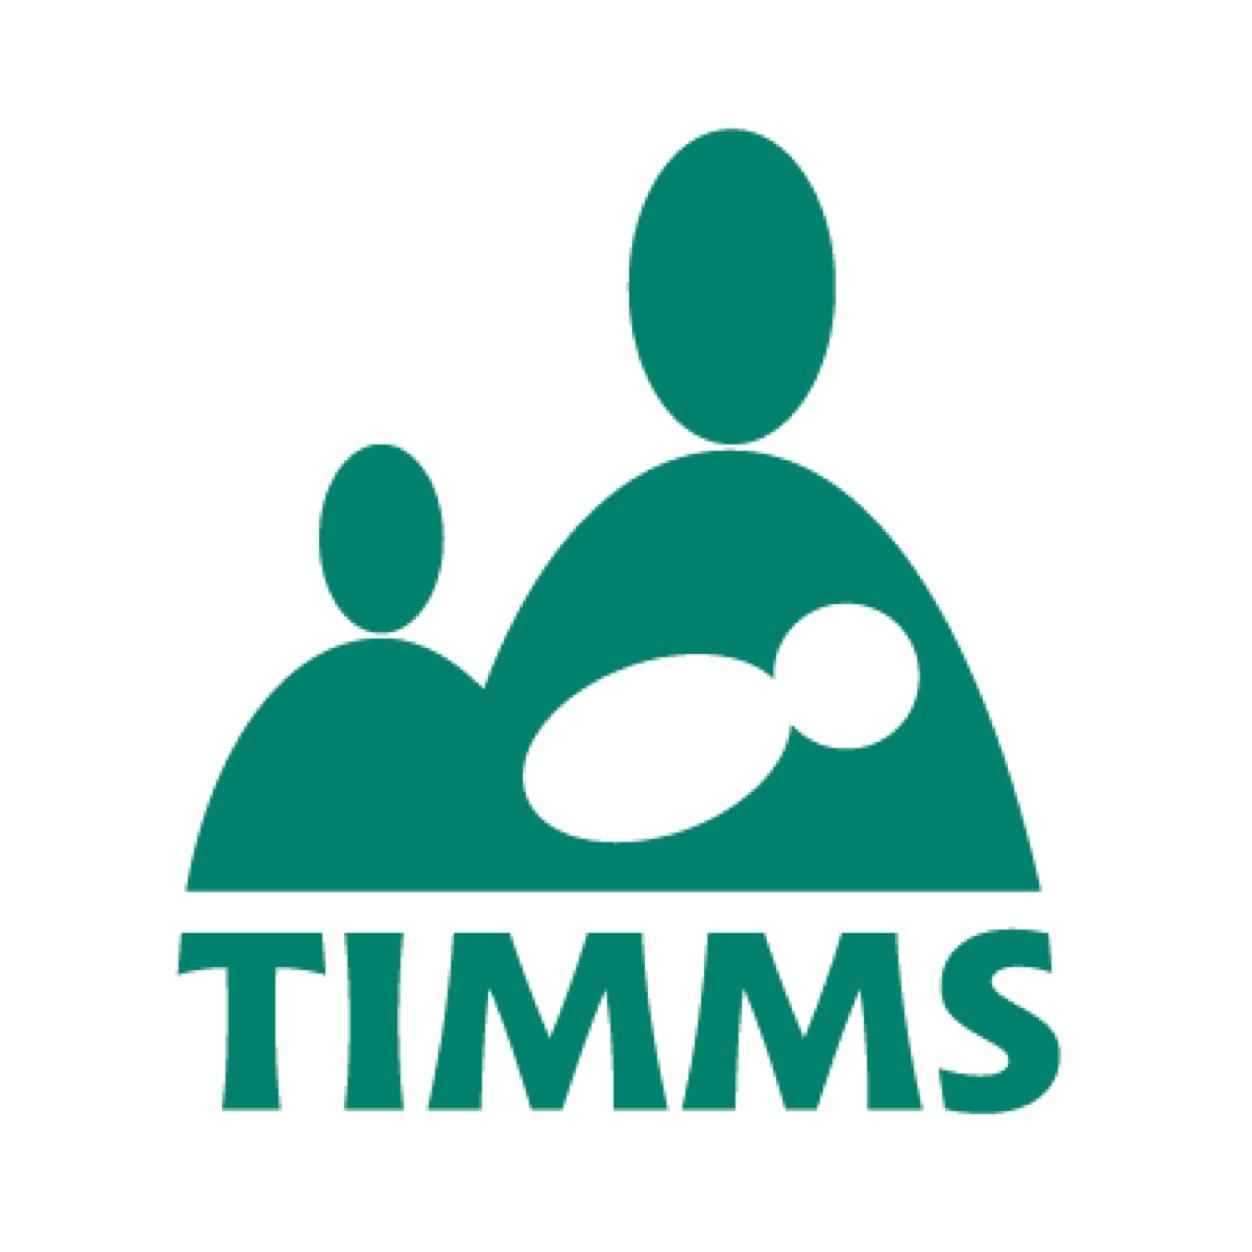 TIMMS